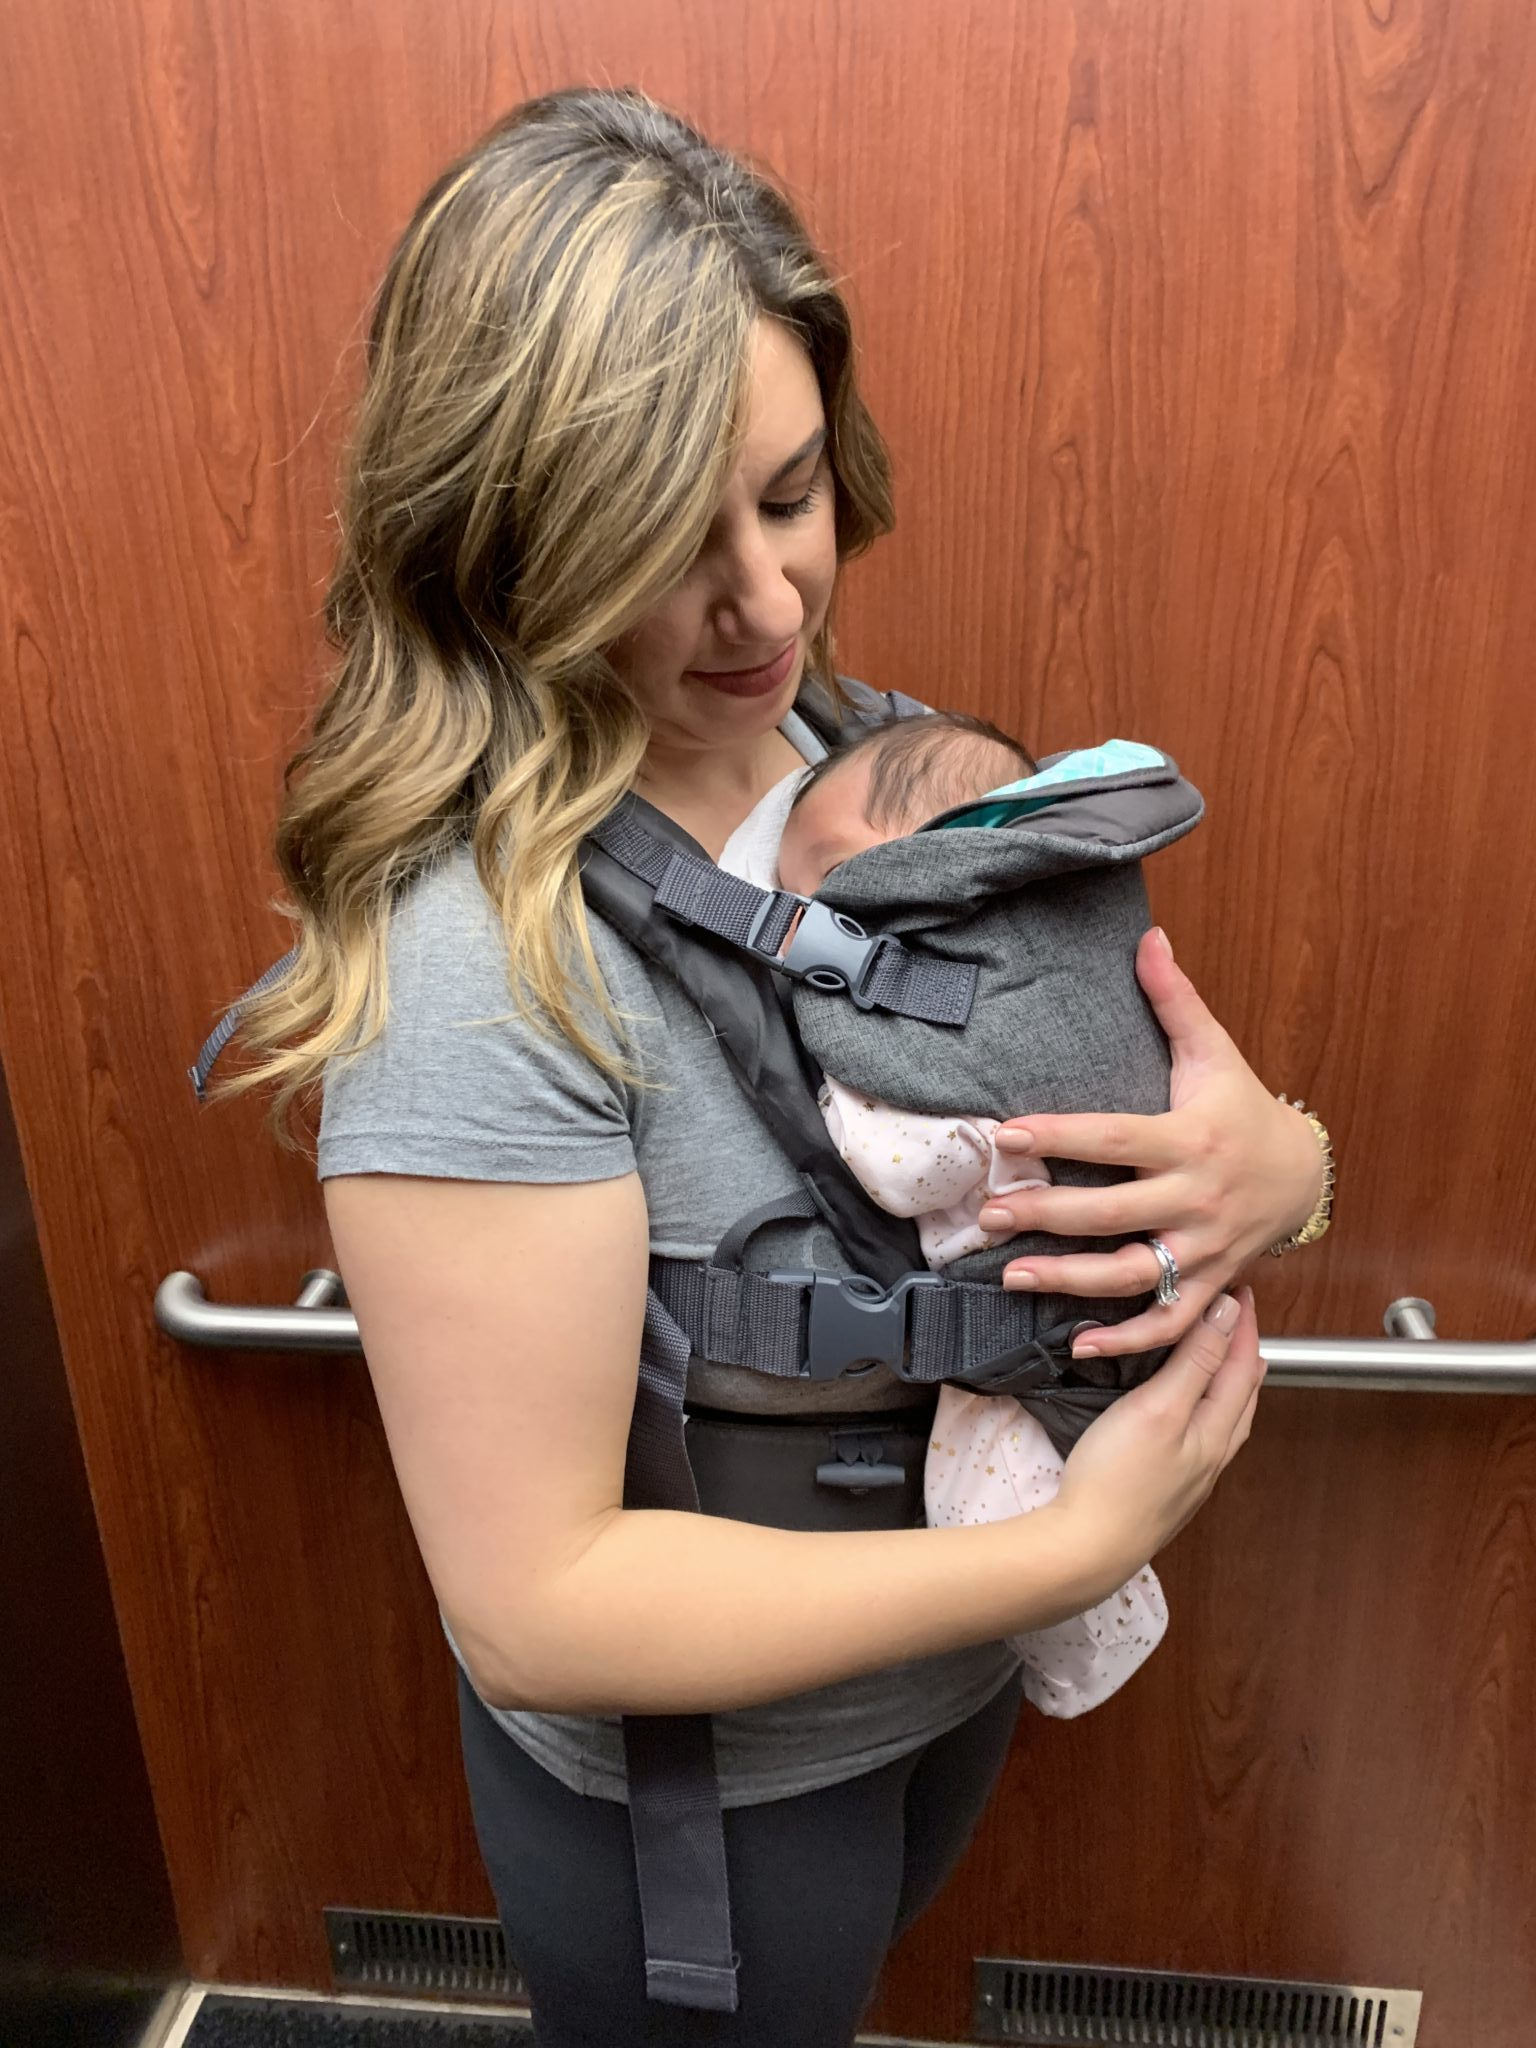 Best of Baby Month: Huge Savings On Baby Gear! by popular Chicago life and style blog, Glass of Glam: image of a woman holding her newborn baby in a baby carrier.